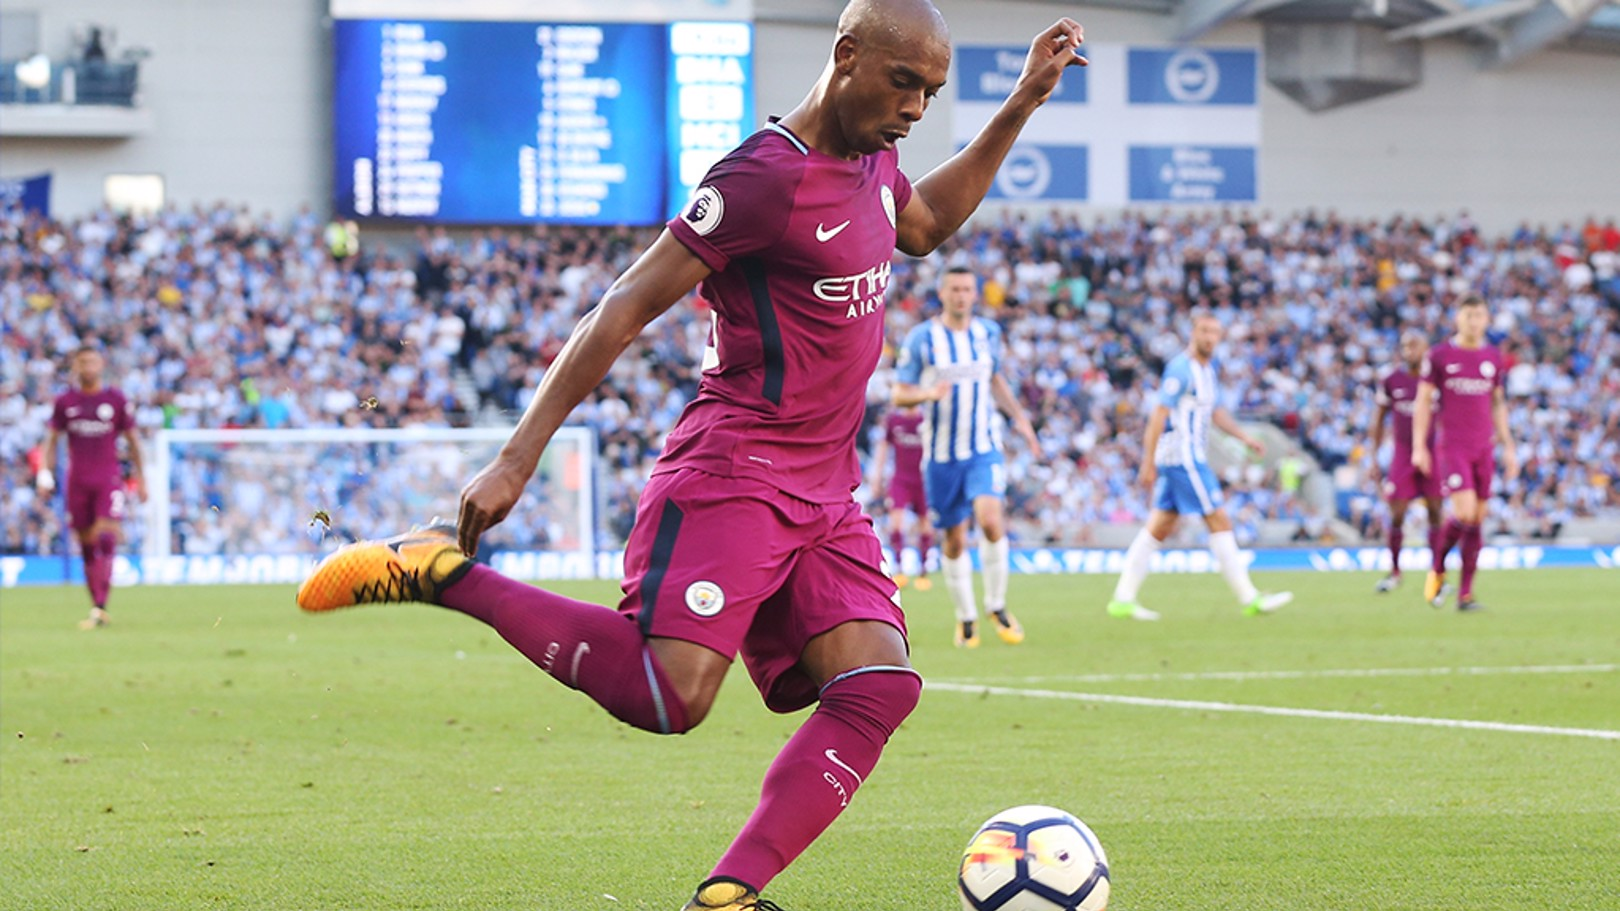 FERNANDINHO: Believes new signings will have a major impact